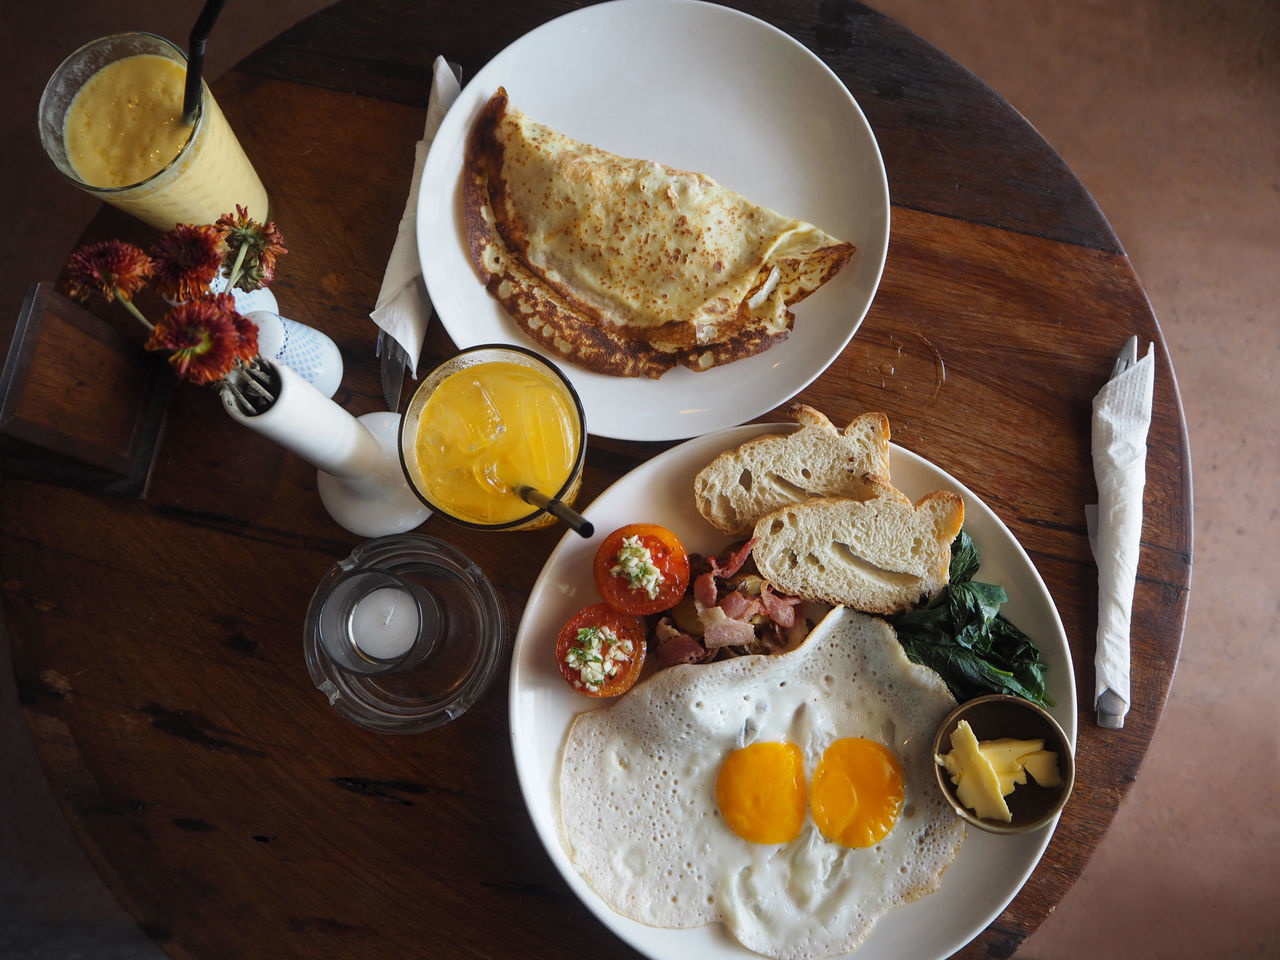 🍹🍳🍞 Travel Bali Bali, Indonesia Breakfast Brunch English Breakfast Exceptional Photographs Food Food And Drink Freshness Fried Egg Healthy Eating High Angle View Indoors  Lifestyles No People On The Table Orange Juice  Ready-to-eat Still Life Table Tadaa Community Toasted Bread Orange Juice  Travel Destinations